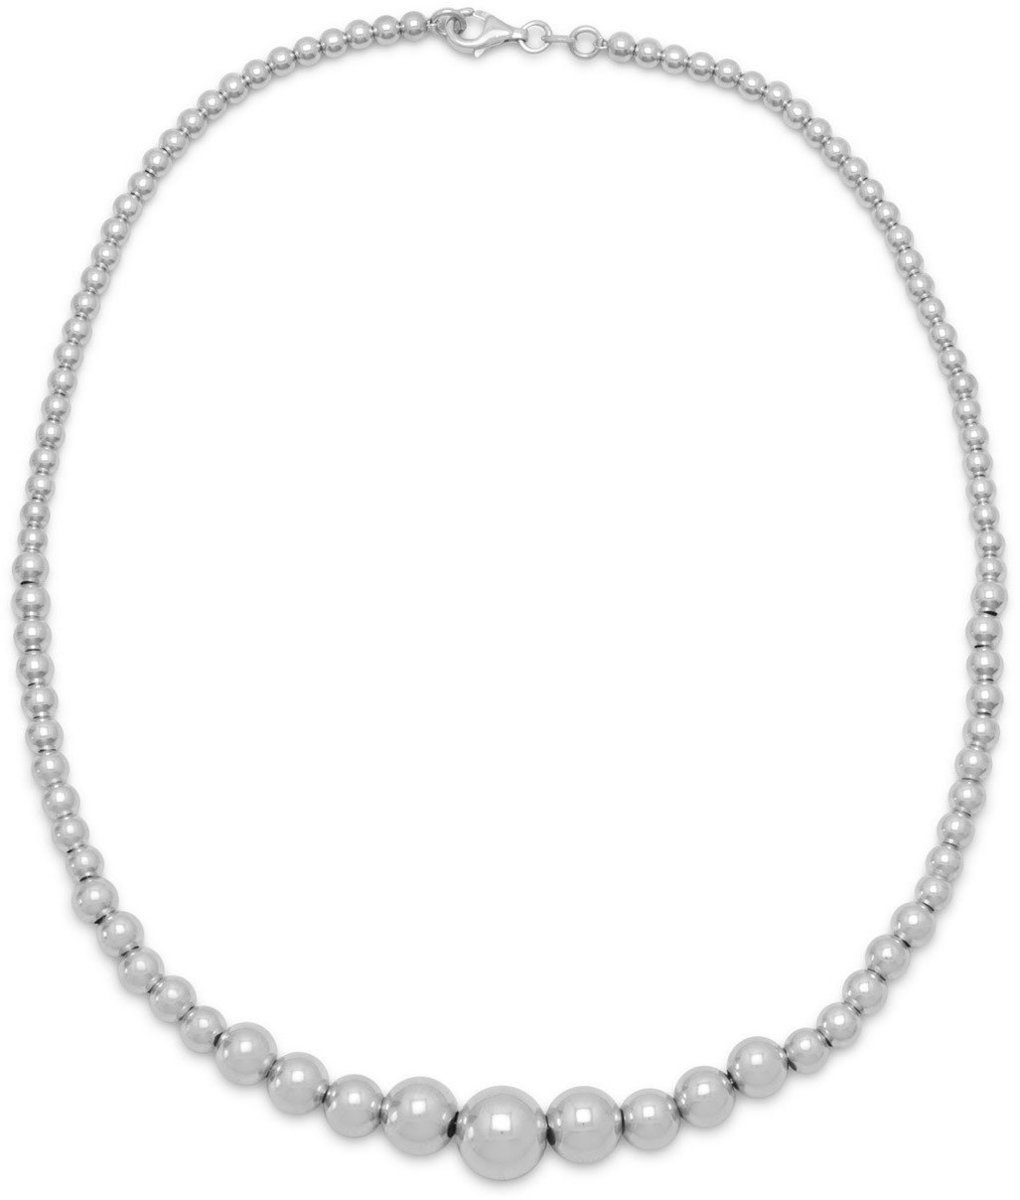 "17.5"" Rhodium Plated Graduated Bead Necklace 925 Sterling Silver"